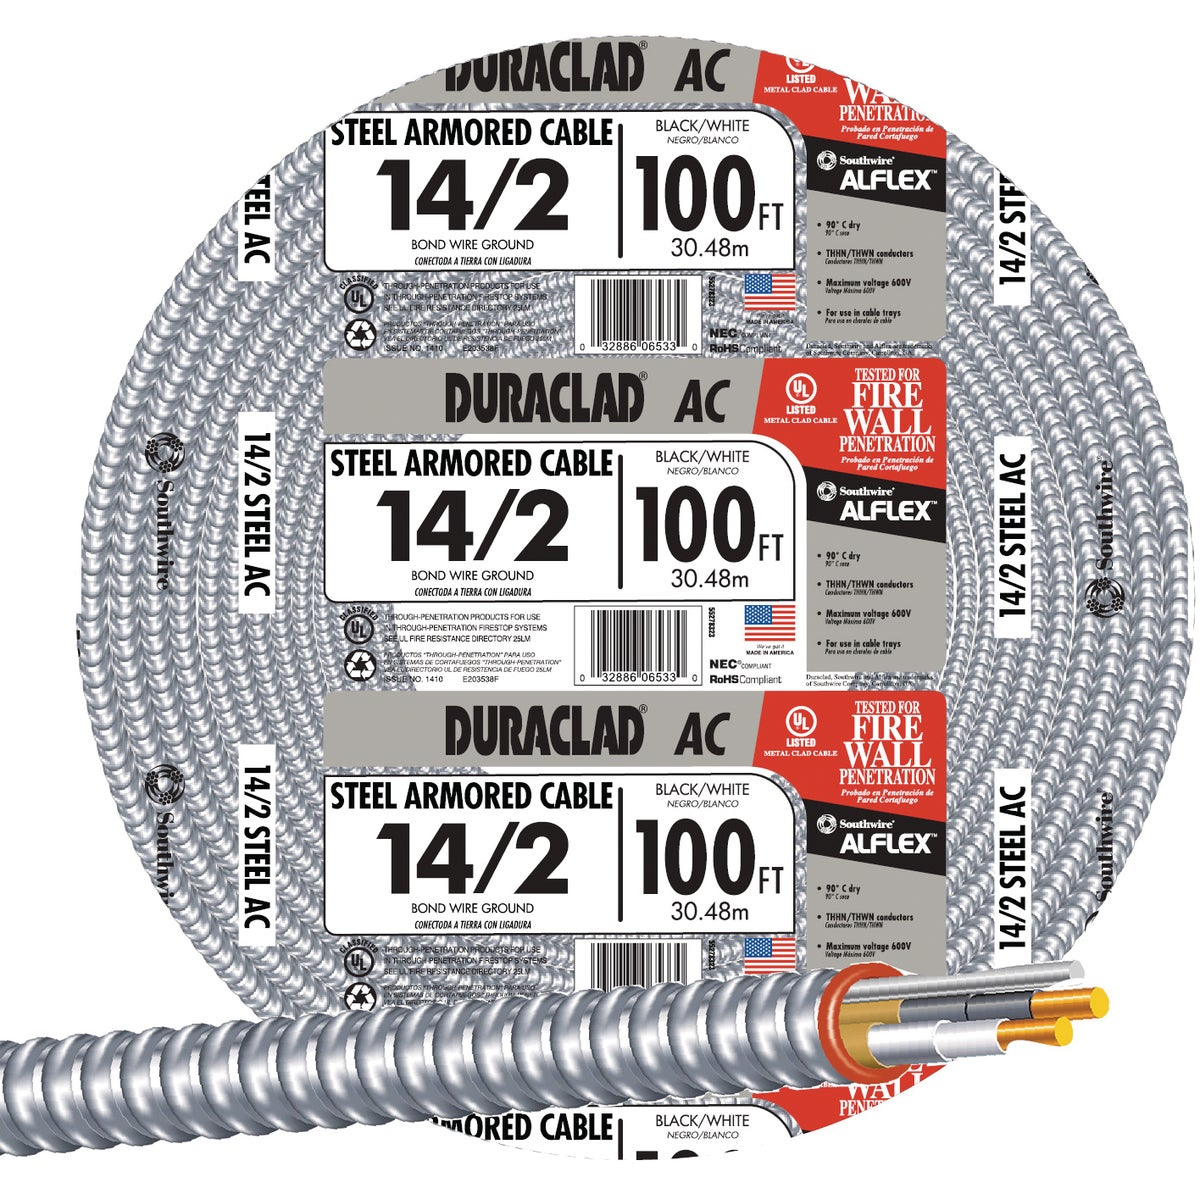 100' 14/2 STL ARMR CABLE - 55278323 by Southwire Company